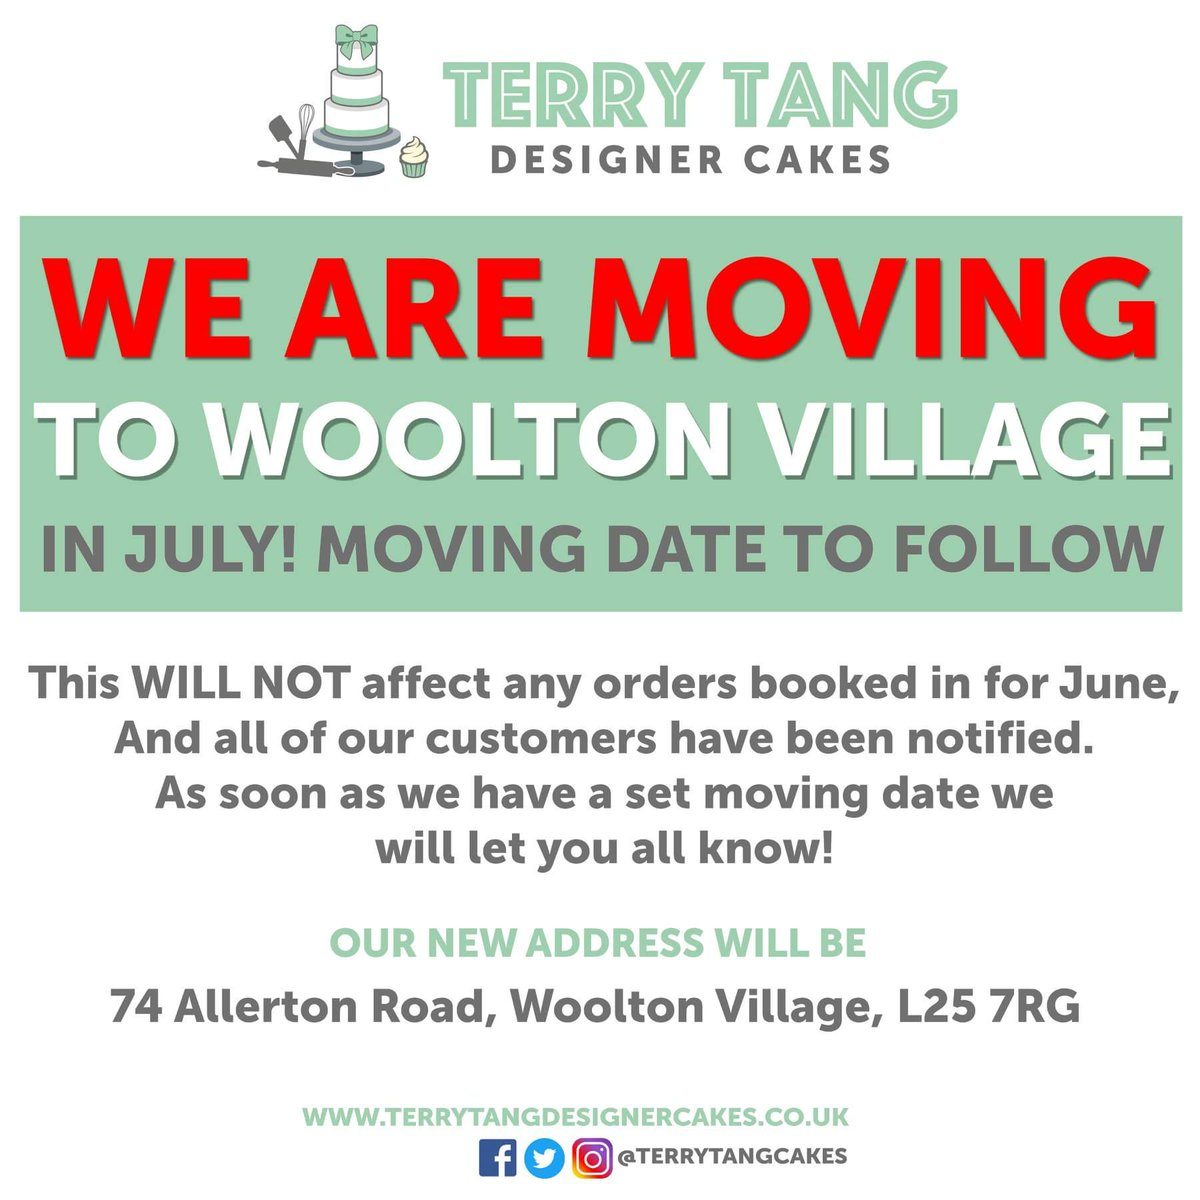 Terry Tang Cakes On Twitter Weve Got Exciting News Terrytangcakes Is The Moveto Woolton Village Check Back For A Moving Date Soon